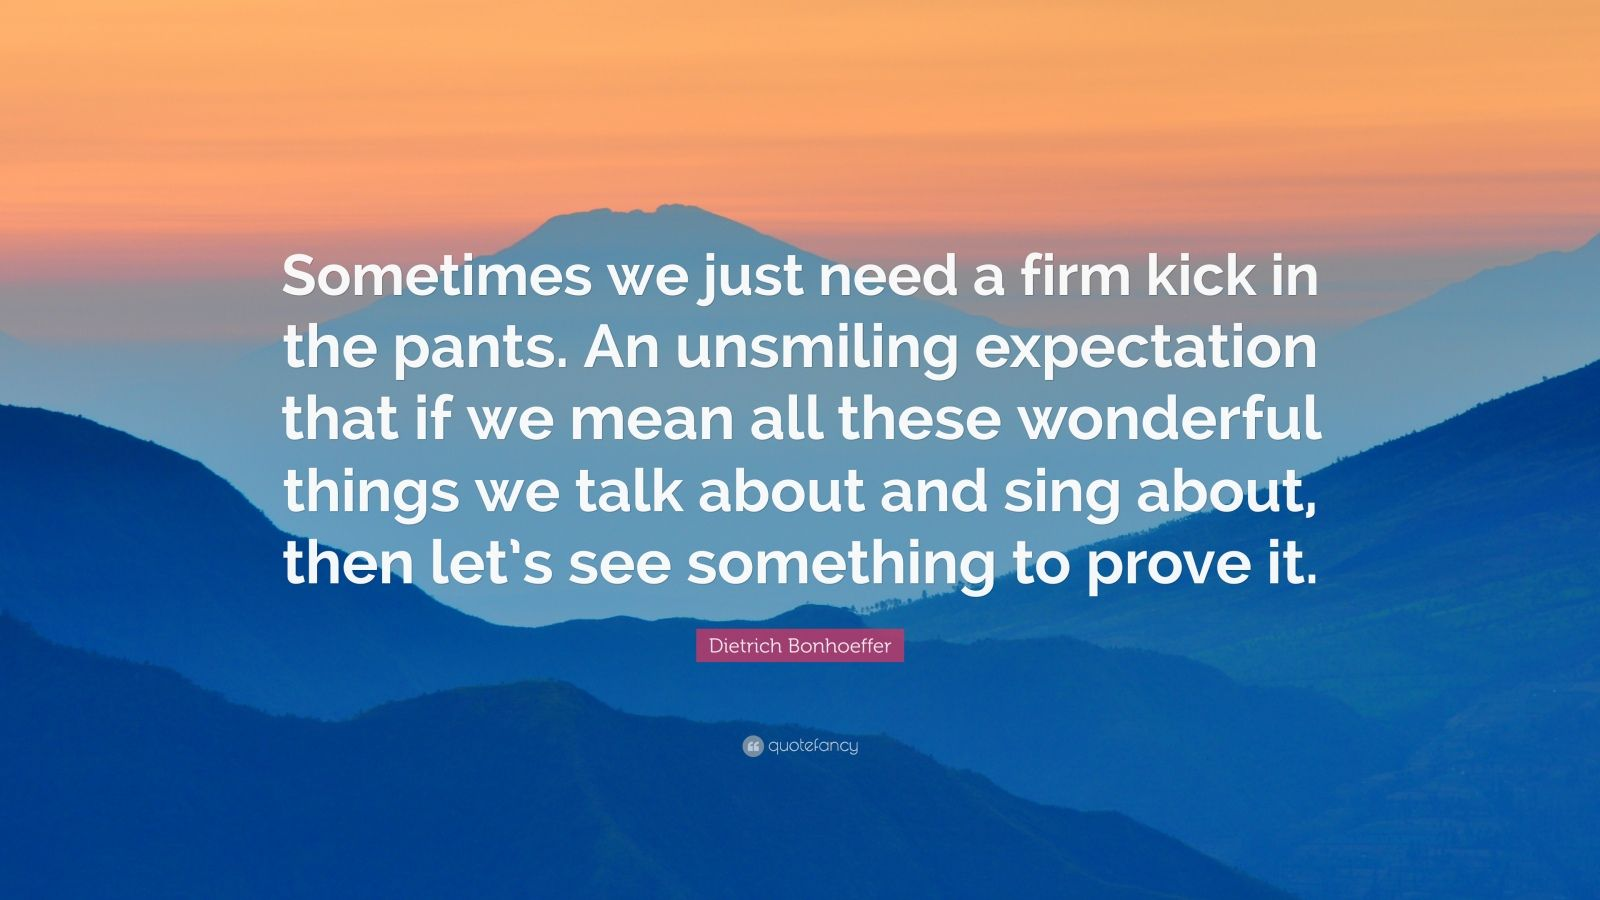 """Dietrich Bonhoeffer Quote: """"Sometimes we just need a firm kick in the pants. An unsmiling expectation that if we mean all these wonderful things we talk about and sing about, then let's see something to prove it."""""""